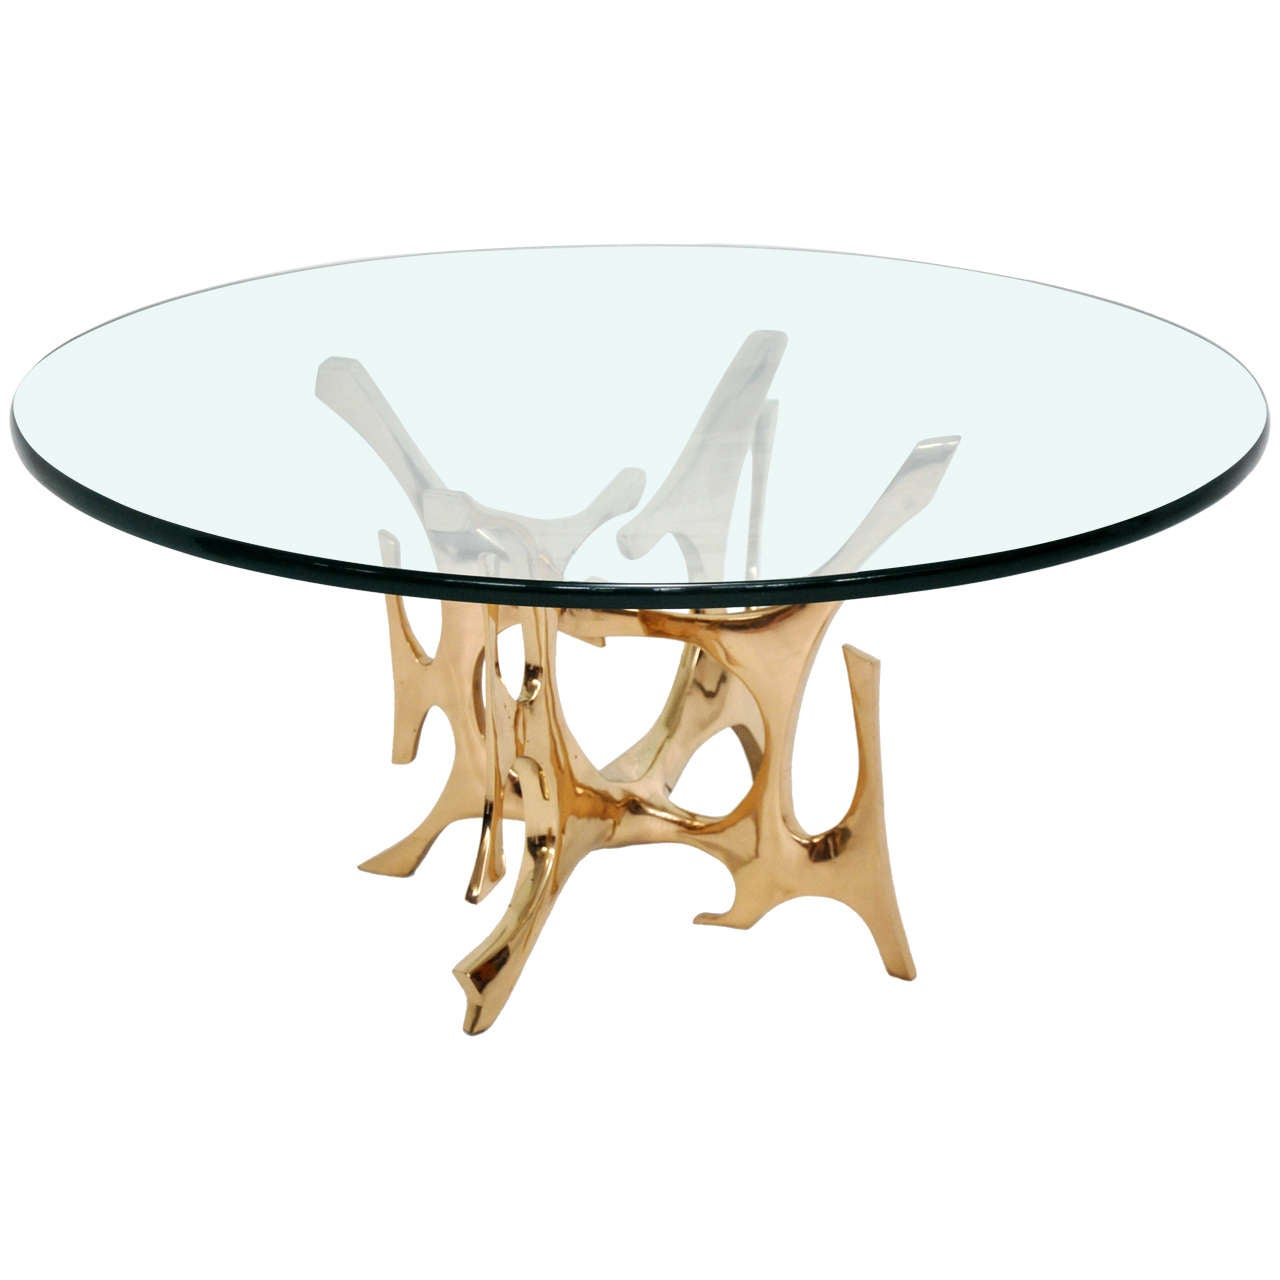 Fred brouard bronze sculpture coffee table for sale at 1stdibs fred brouard bronze sculpture coffee table 1 geotapseo Image collections